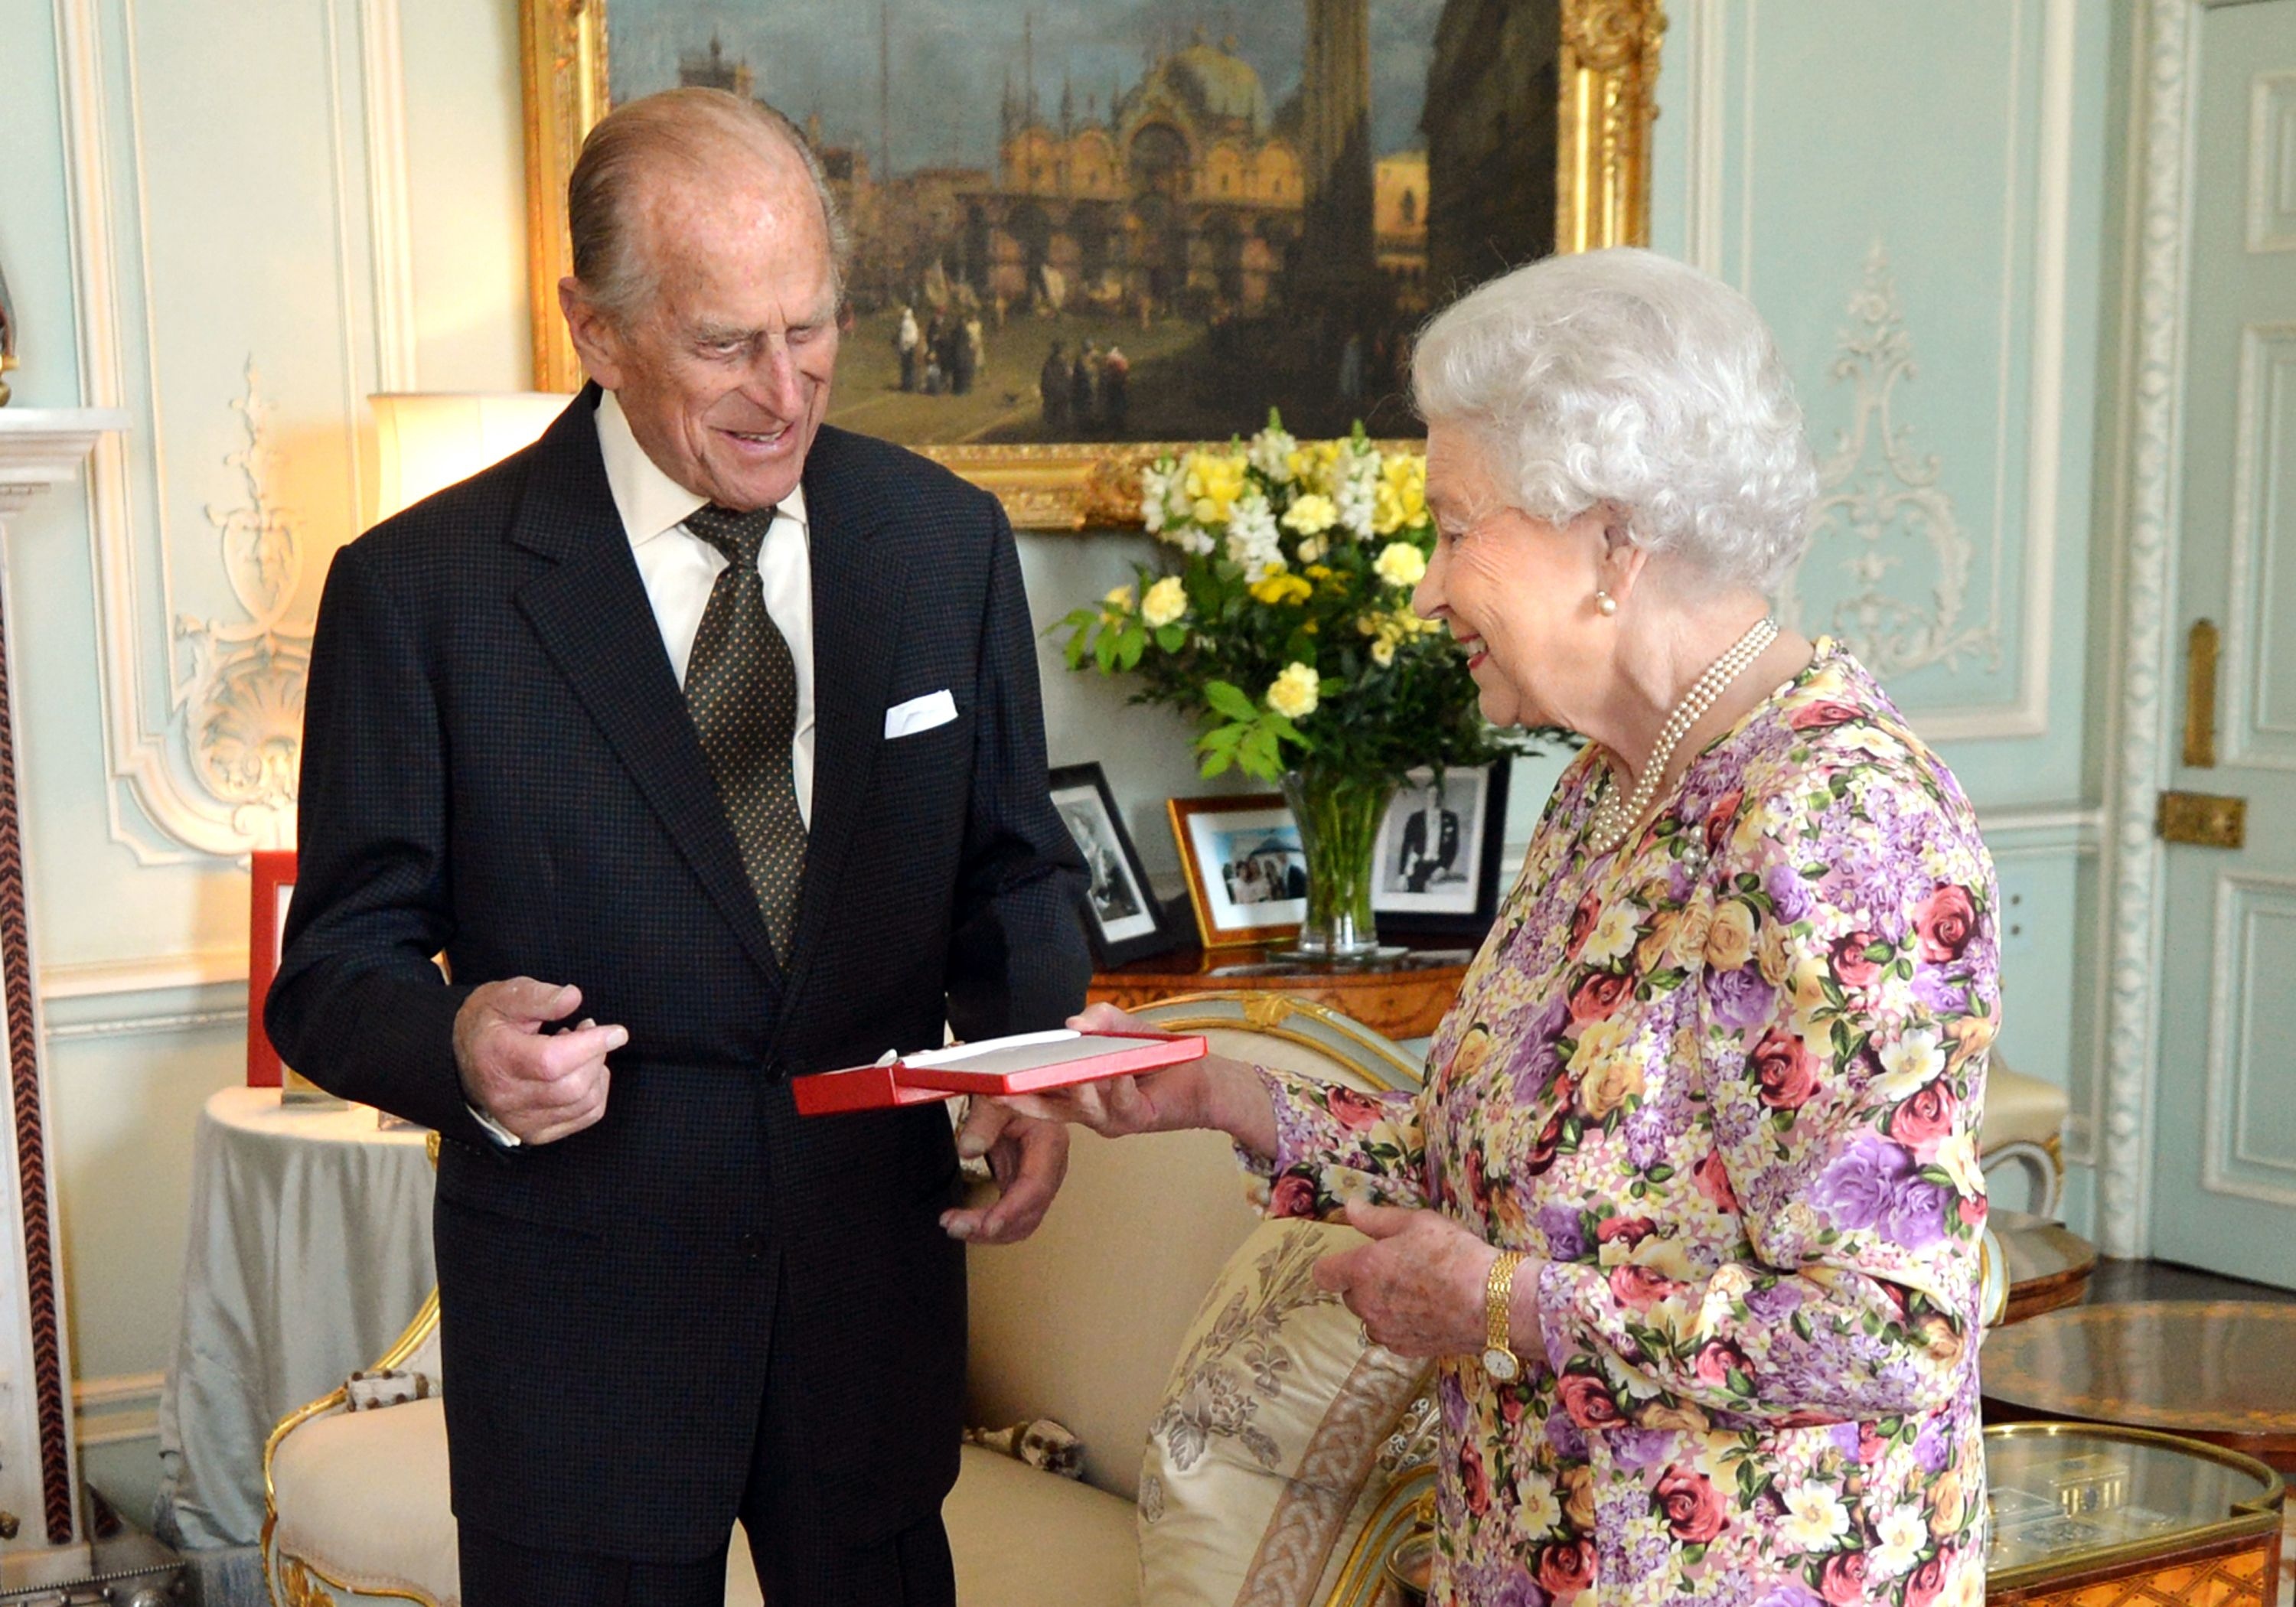 The Queen Bestows an Honor on Her Husband